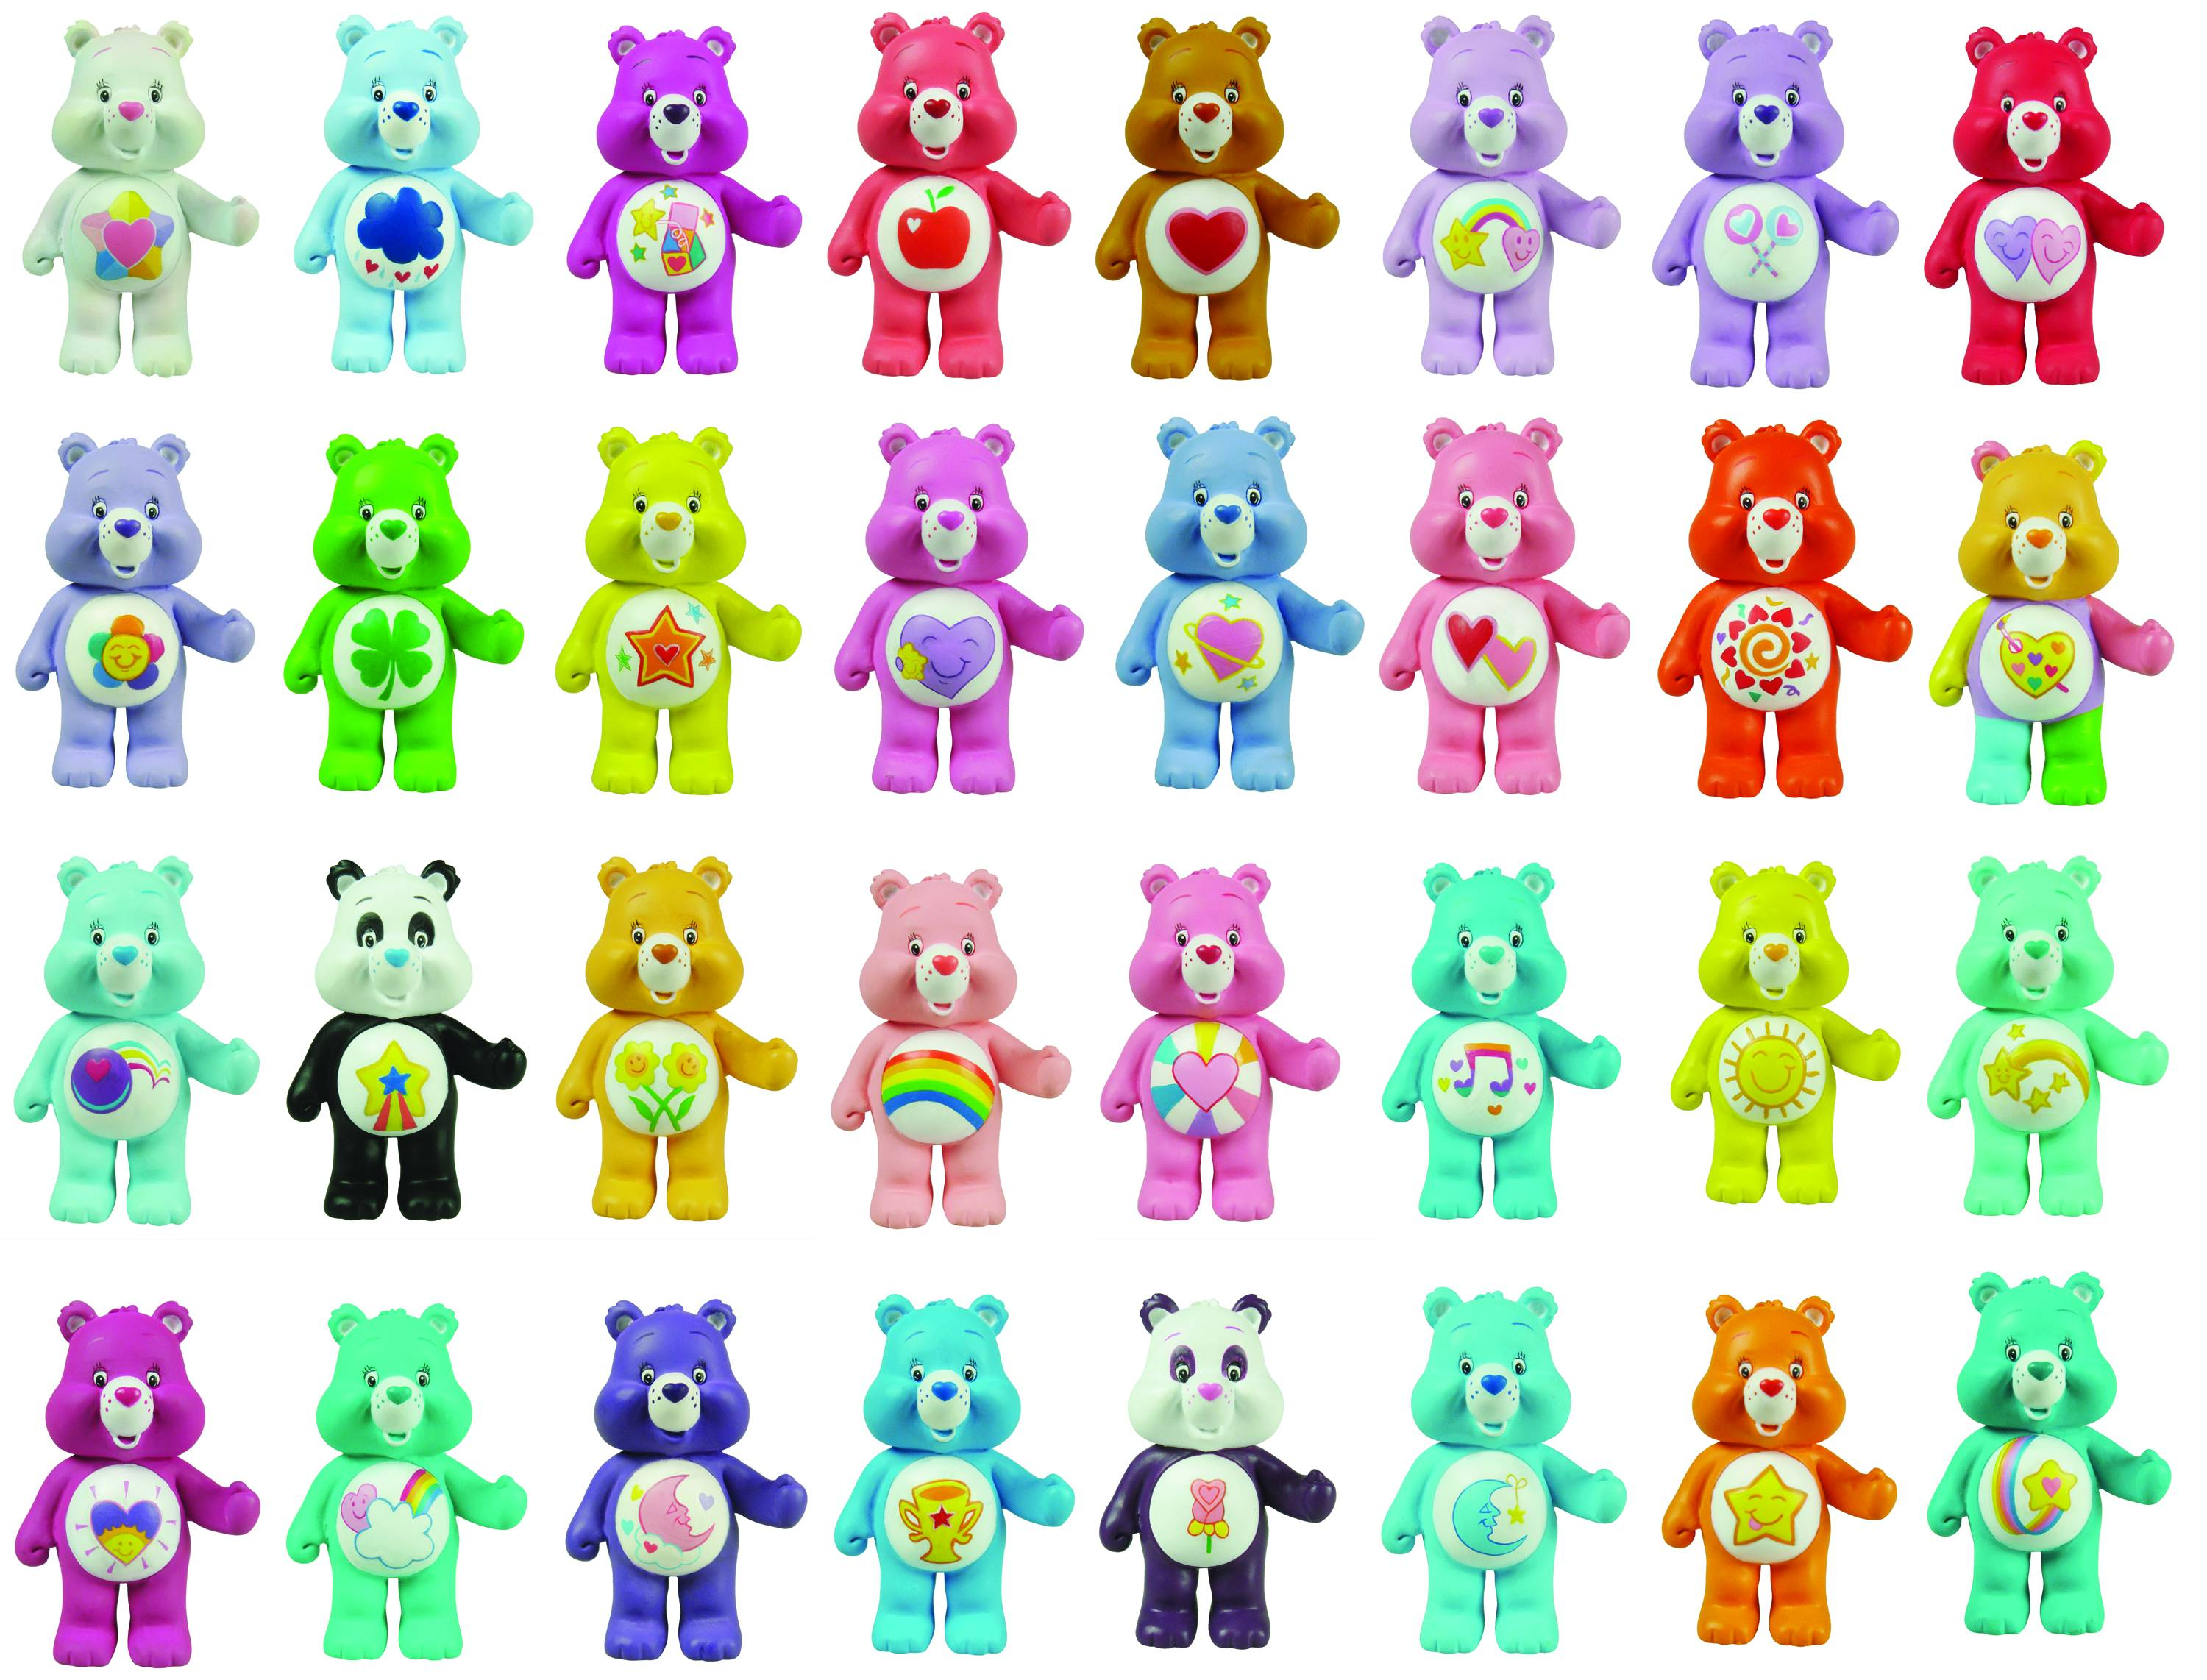 image regarding Care Bear Belly Badges Printable called Treatment Bears Names Figures -